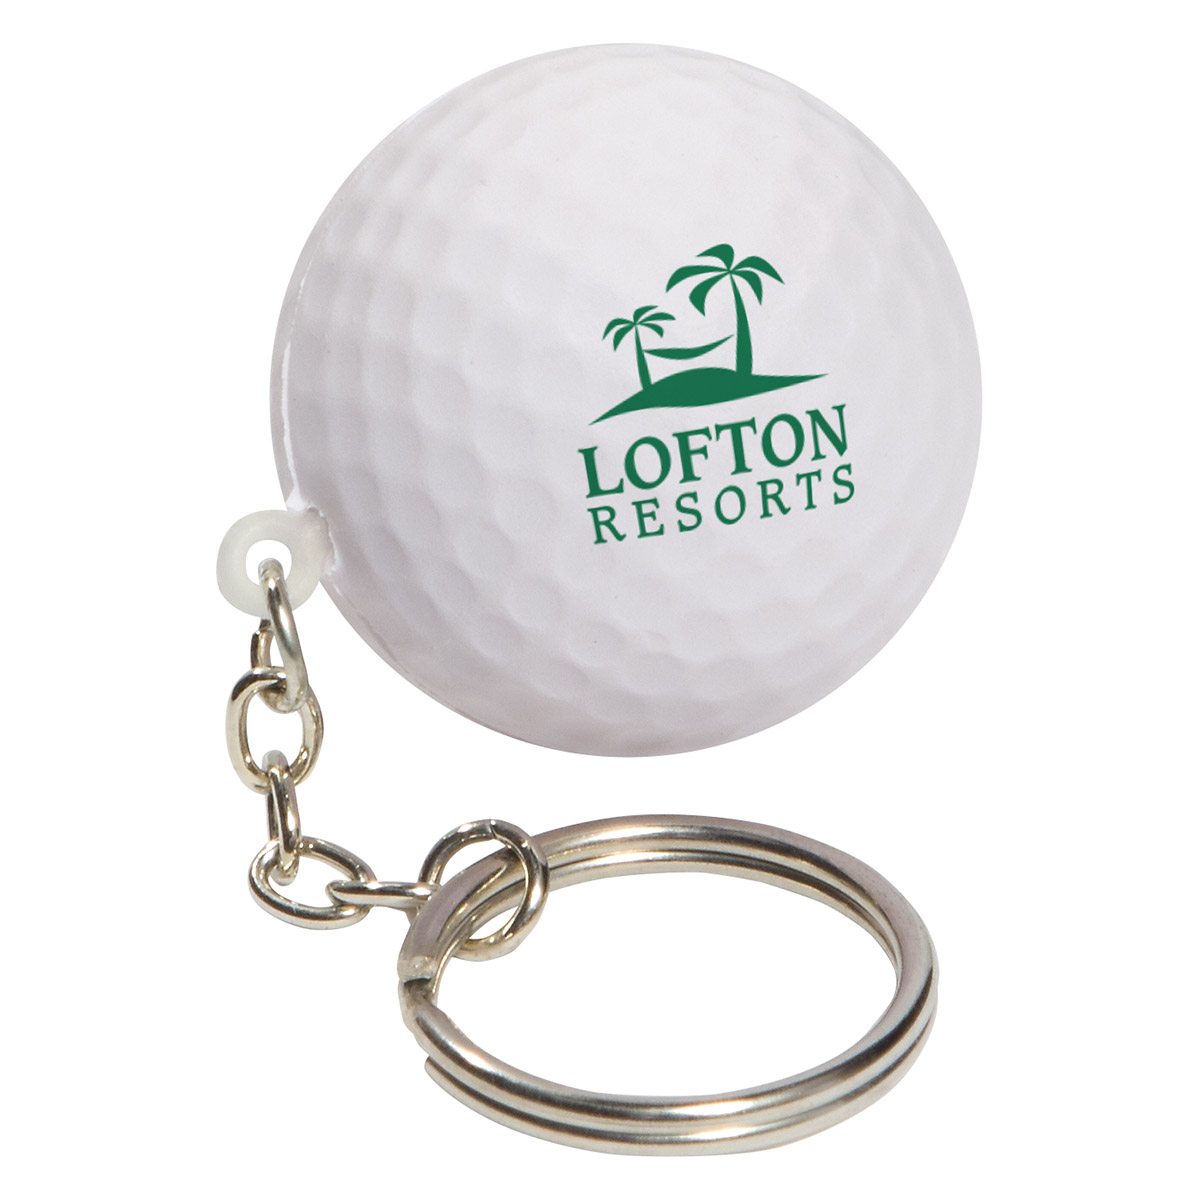 Golf Ball Stress Reliever Keychain, LKC-GF04 - 1 Colour Imprint